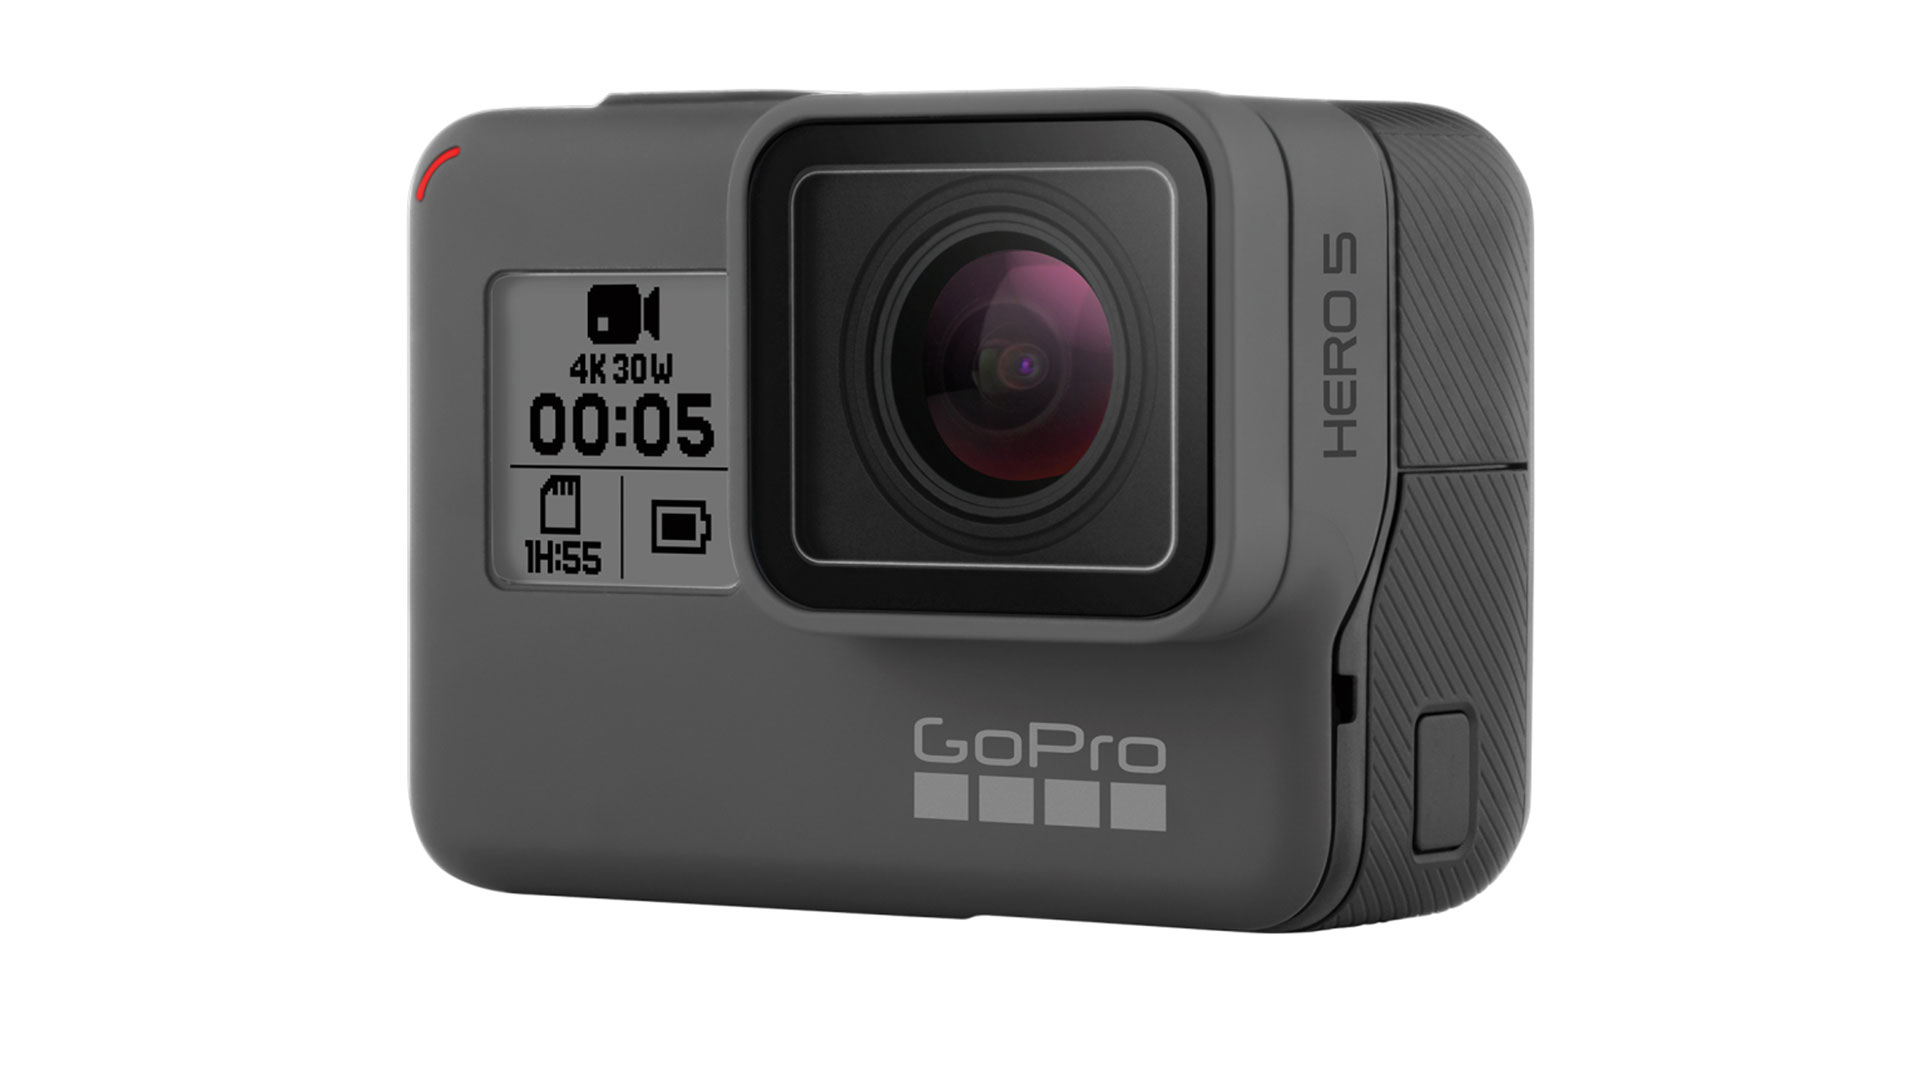 The Ultimate GoPro Kit